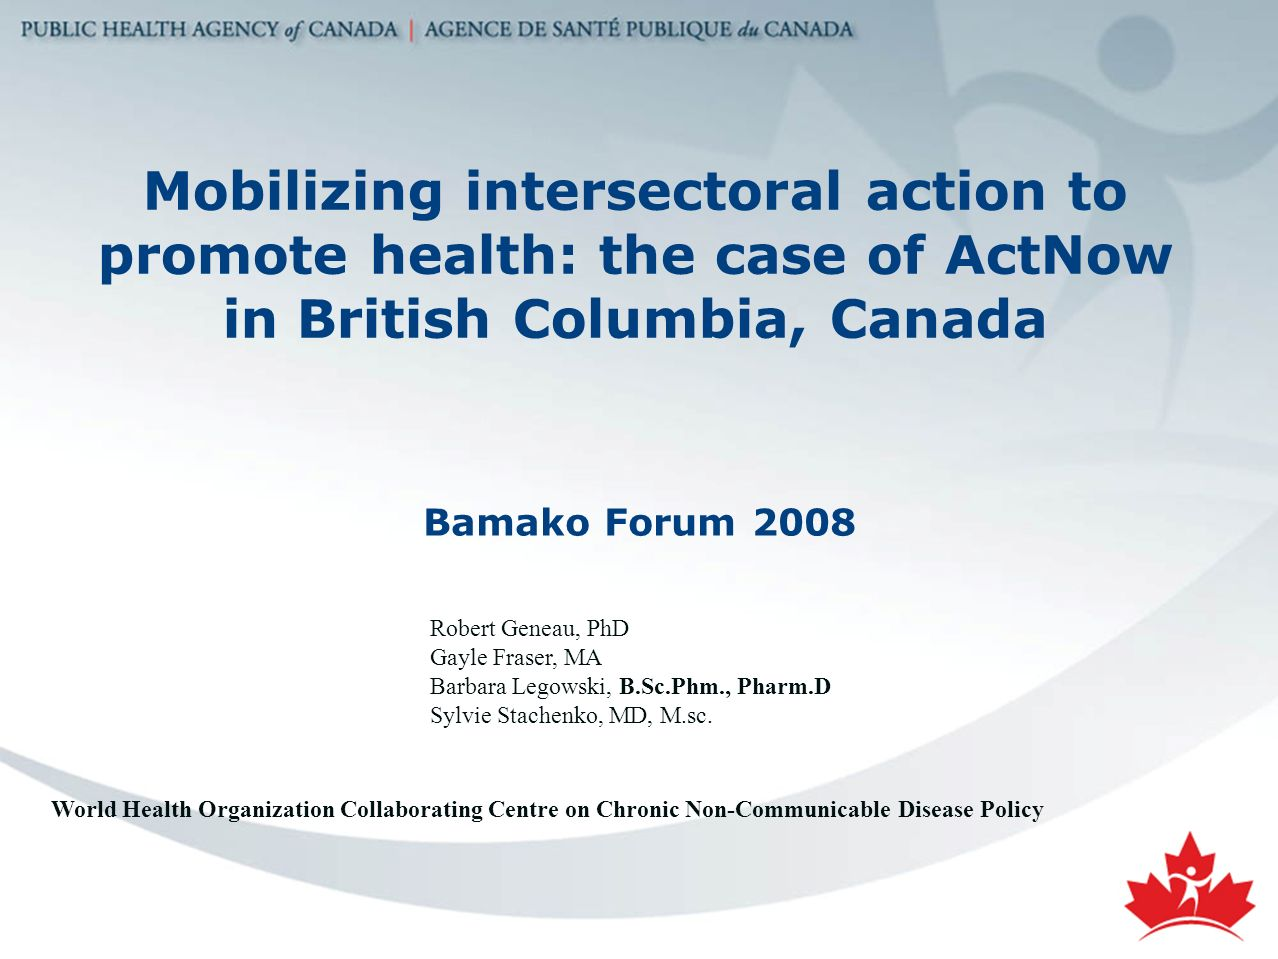 Mobilizing intersectoral action to promote health: the case of ActNow in British Columbia, Canada Bamako Forum 2008 Robert Geneau, PhD Gayle Fraser, MA Barbara Legowski, B.Sc.Phm., Pharm.D Sylvie Stachenko, MD, M.sc.